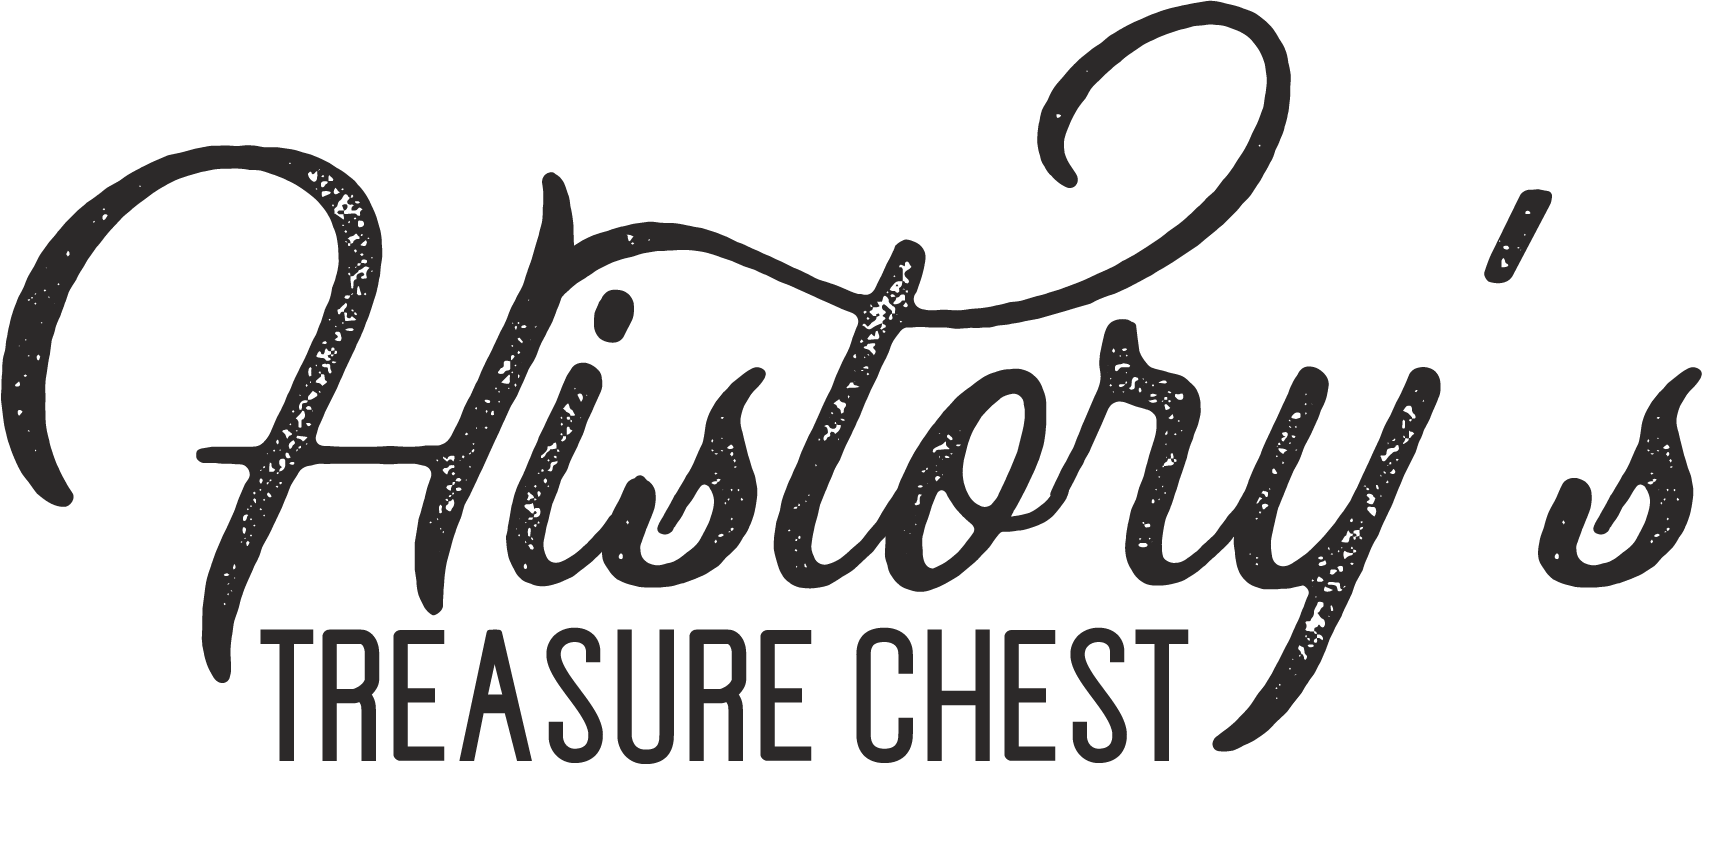 History's Treasure Chest